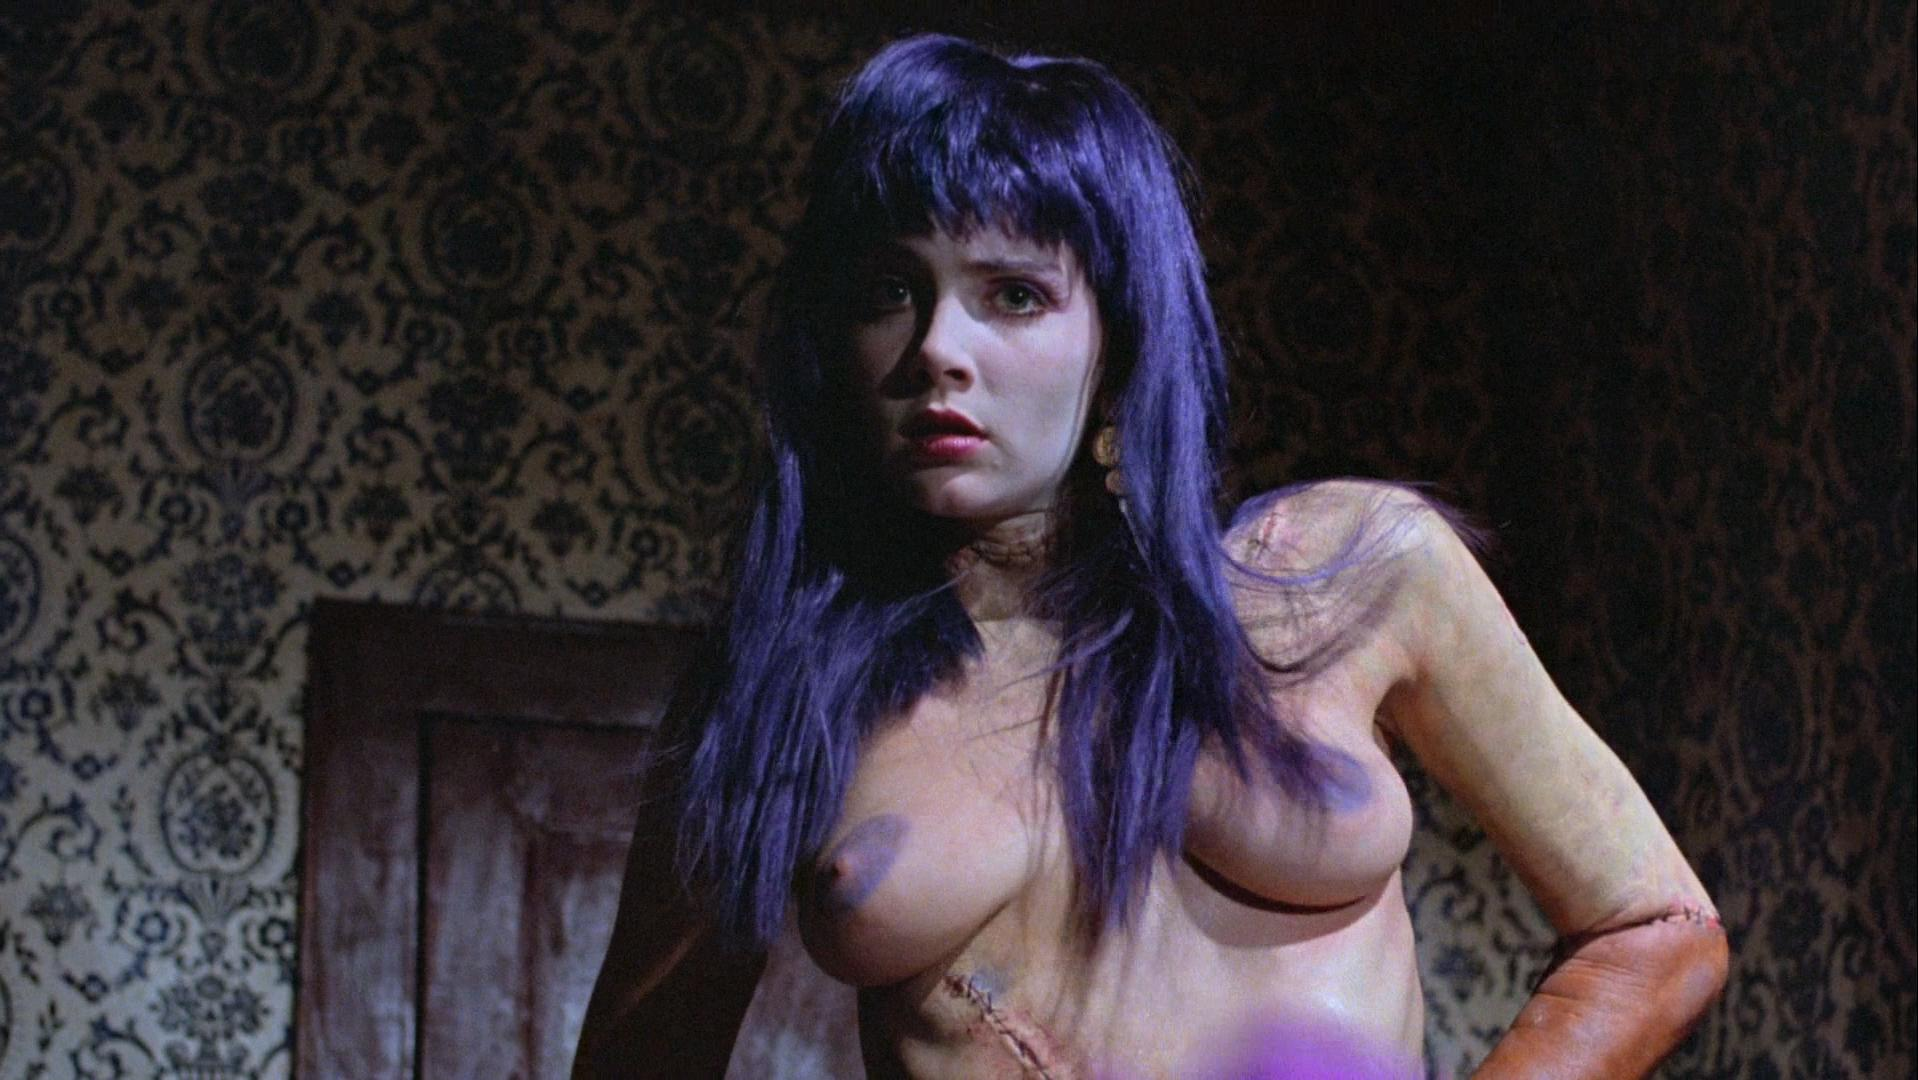 Patty Mullen nude, Heather Hunter nude - Frankenhooker (1990)